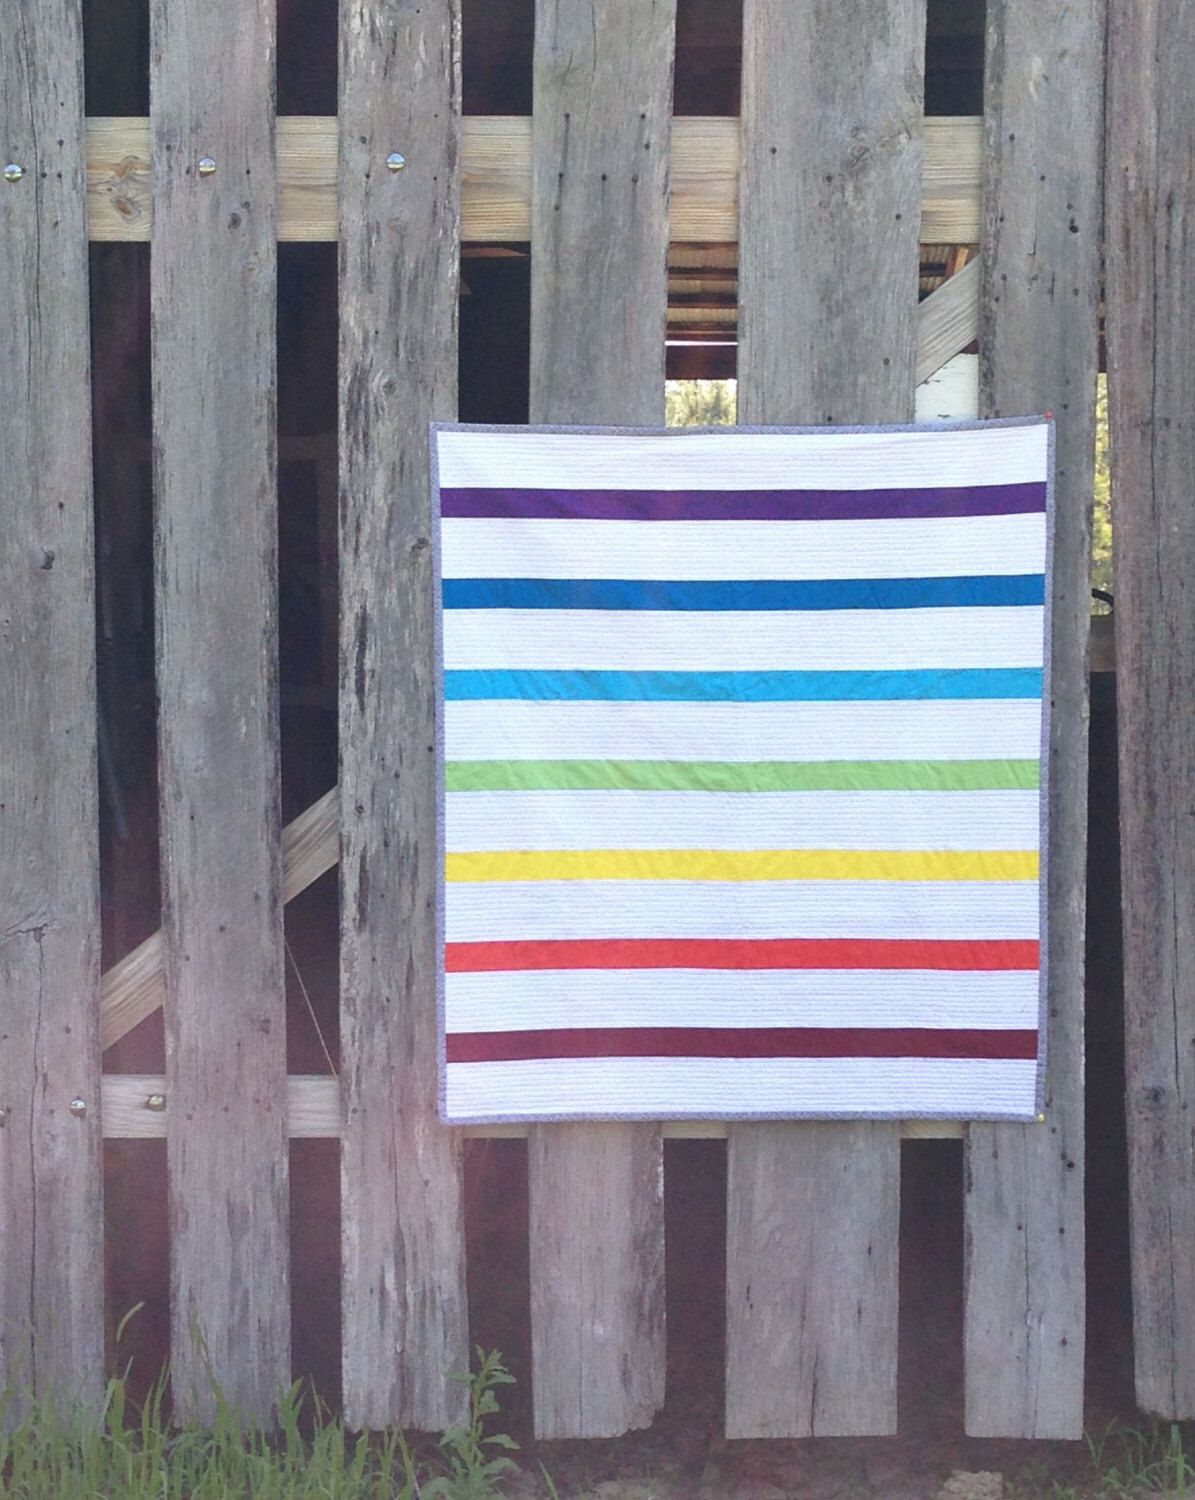 Modern Color Bars Baby quilt by NotionsFiberWorks on Etsy https://www.etsy.com/listing/232250750/modern-color-bars-baby-quilt